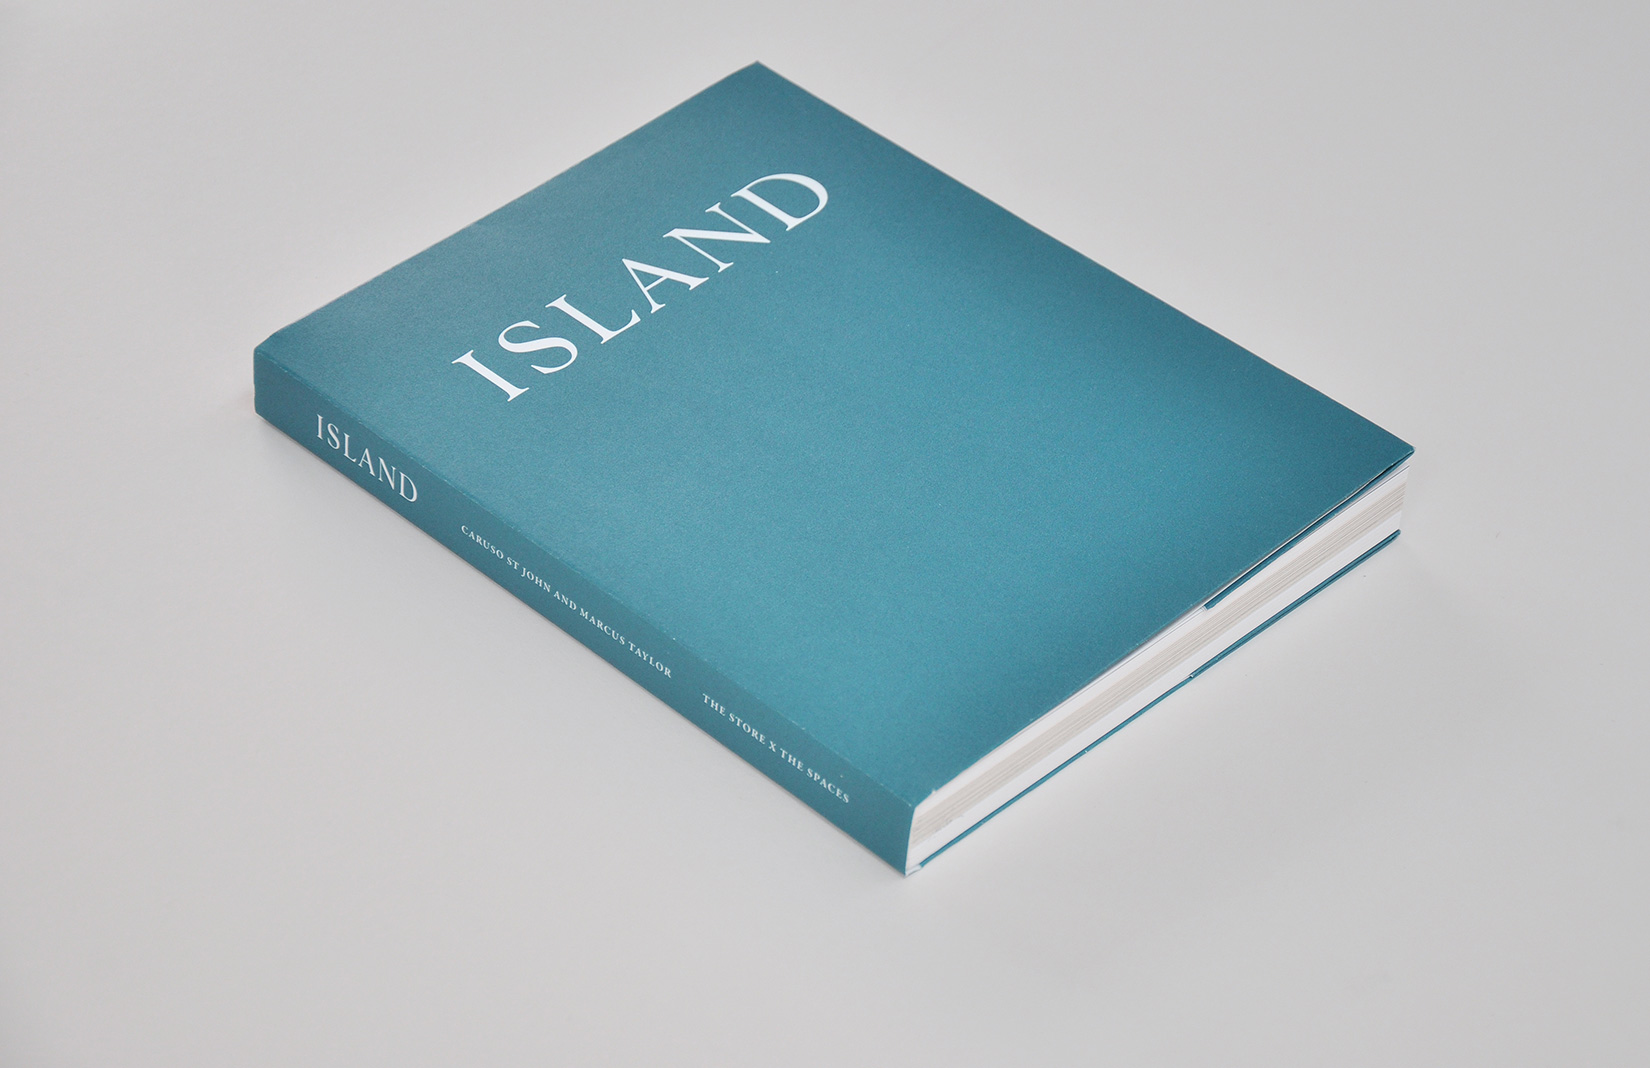 Island book by Caruso St John and Marcus Taylor